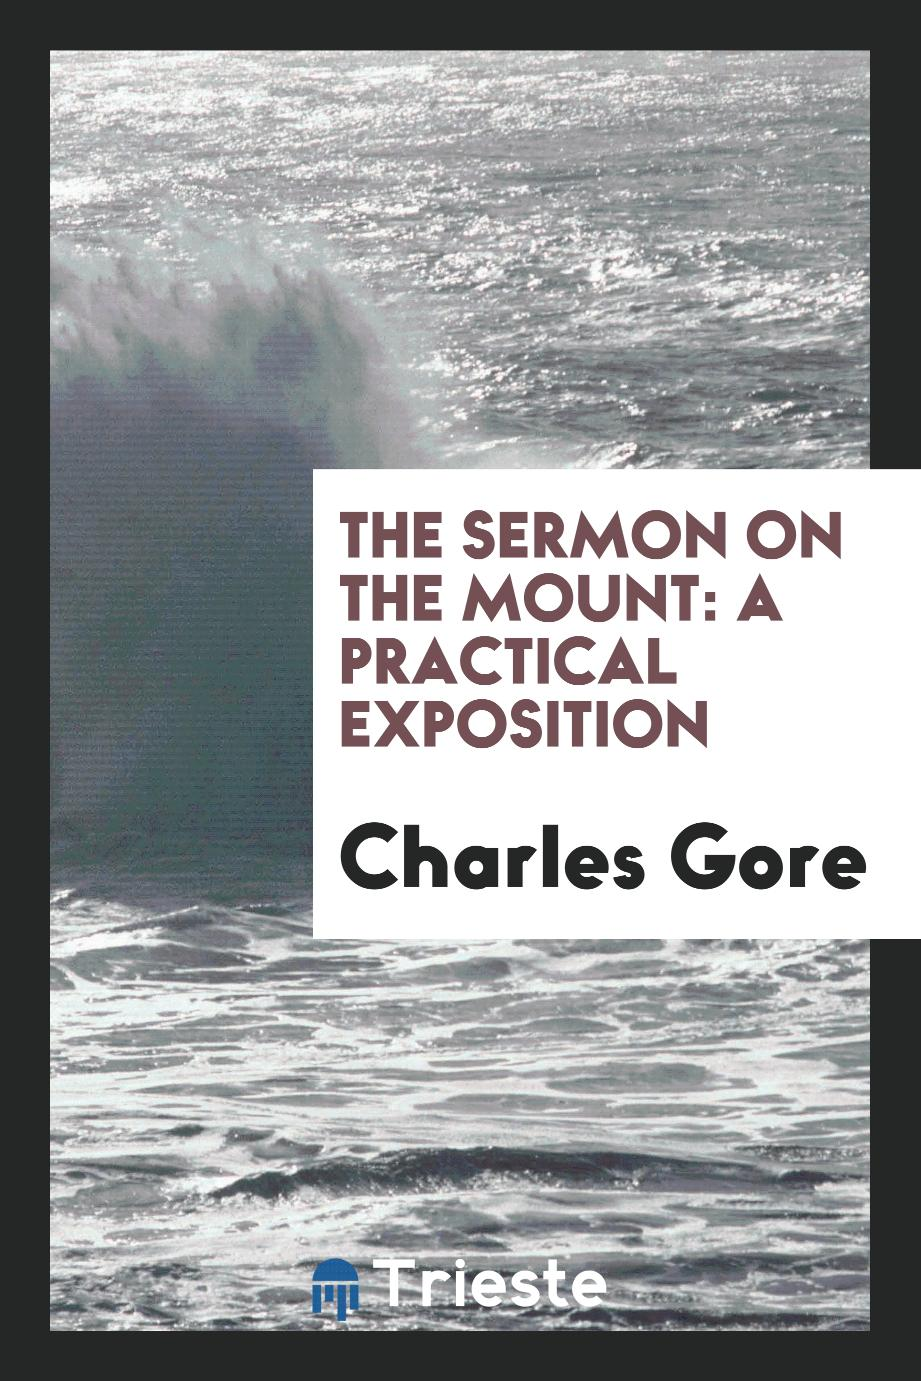 The sermon on the mount: a practical exposition